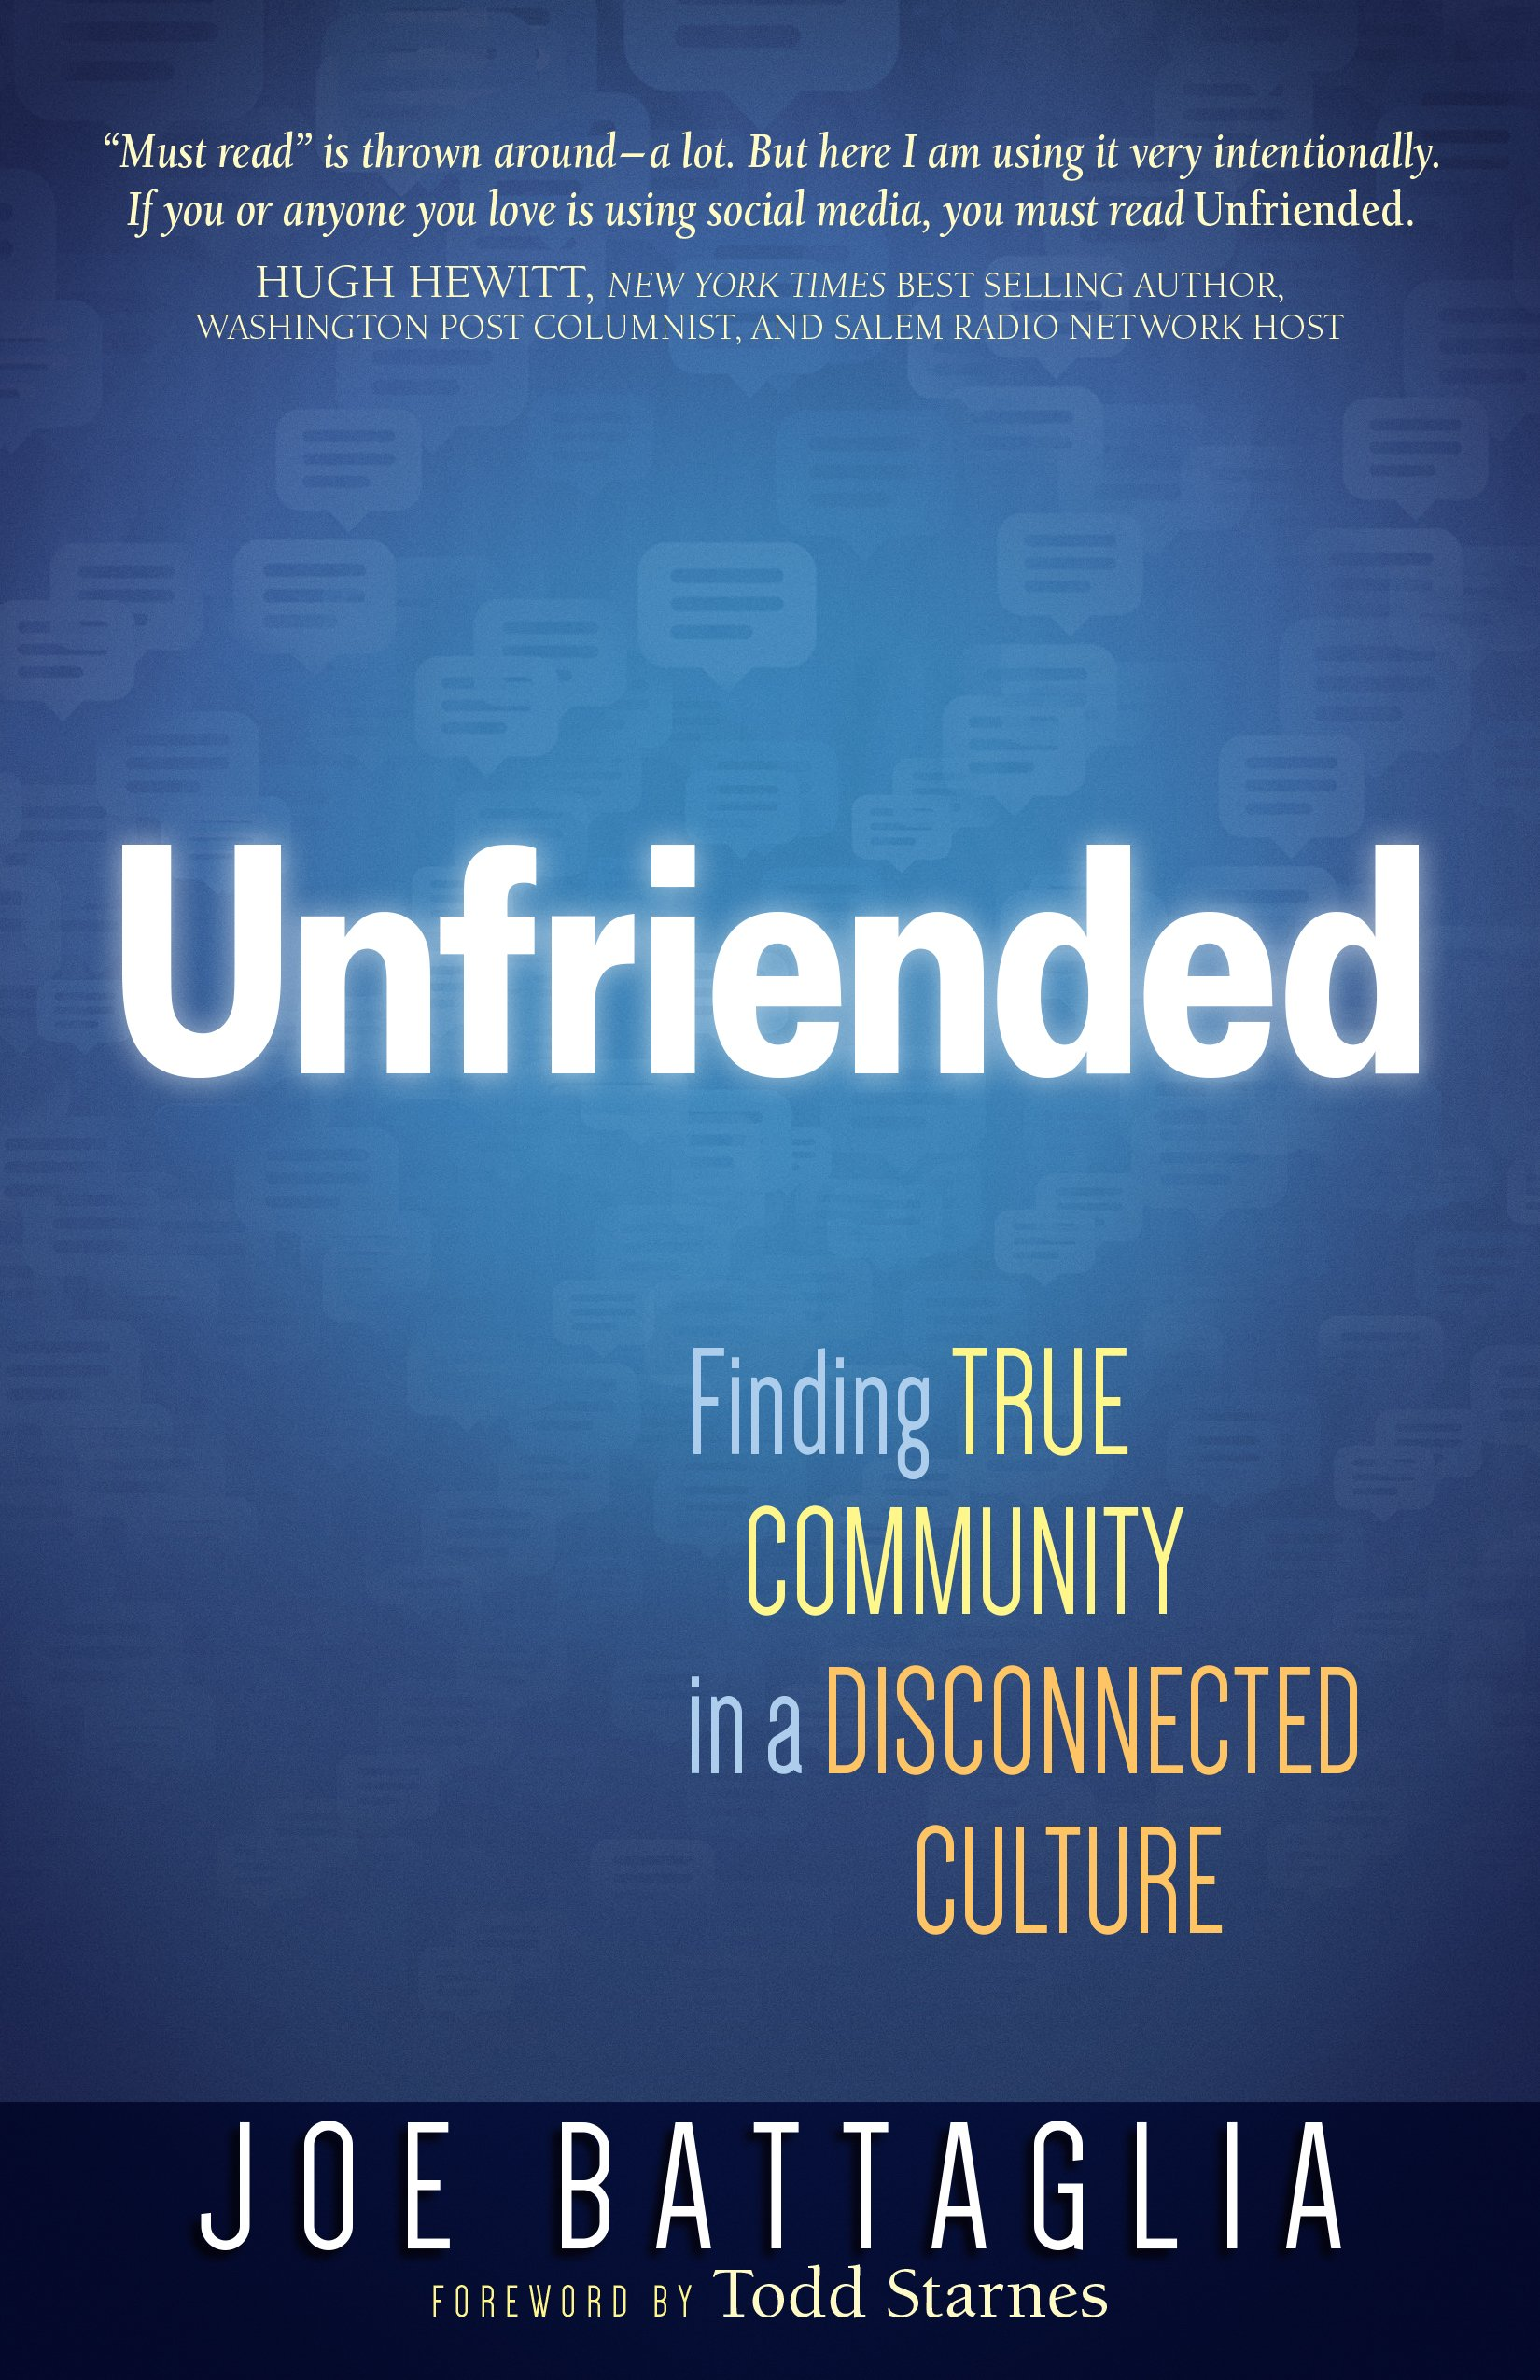 Unfriended: Finding True Community in a Disconnected Culture